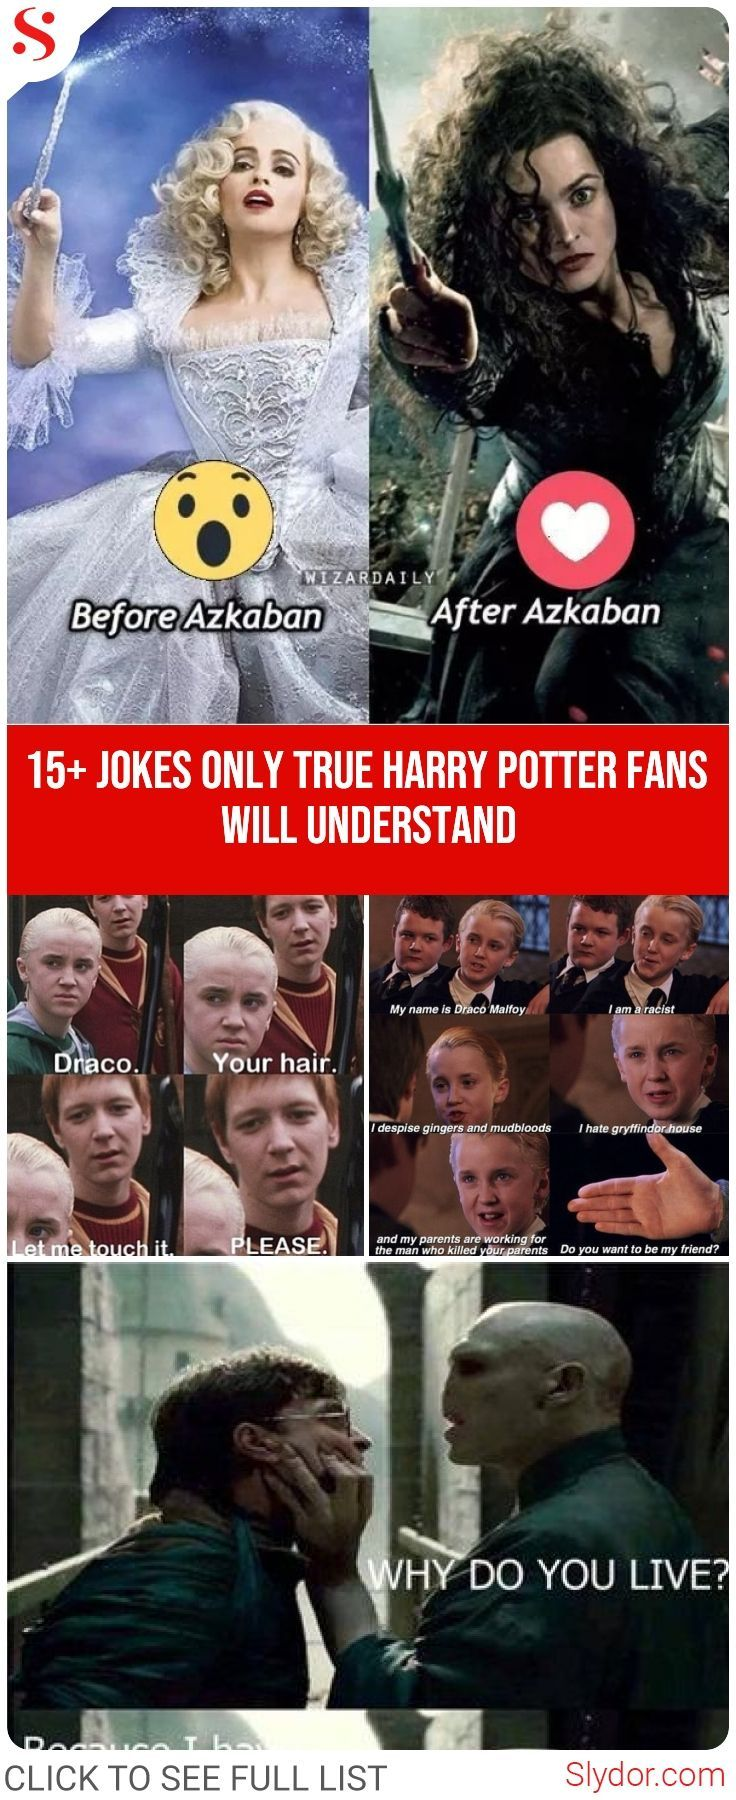 Harry Potter Memes Only A True Potterhead Can Understand Part 3 Harrypotter Memes Pot Harry Potter Memes Hilarious Harry Potter Jokes Harry Potter Funny